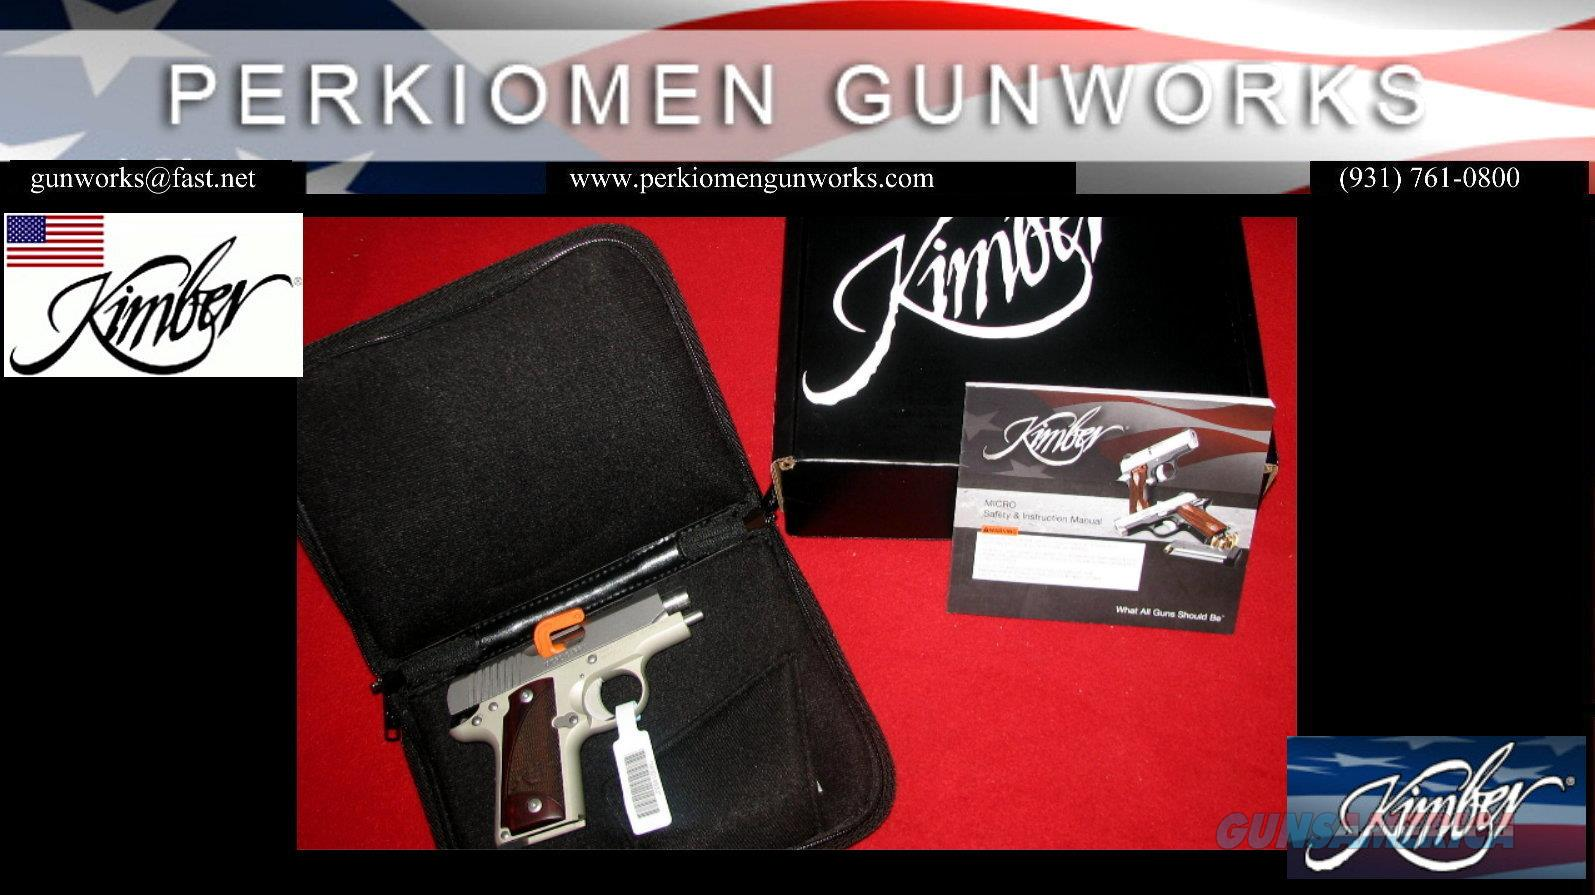 Micro 380 STS Rosewood .380acp New for 2016 (Retirement - Closeout pricing.)  Guns > Pistols > Kimber of America Pistols > Micro